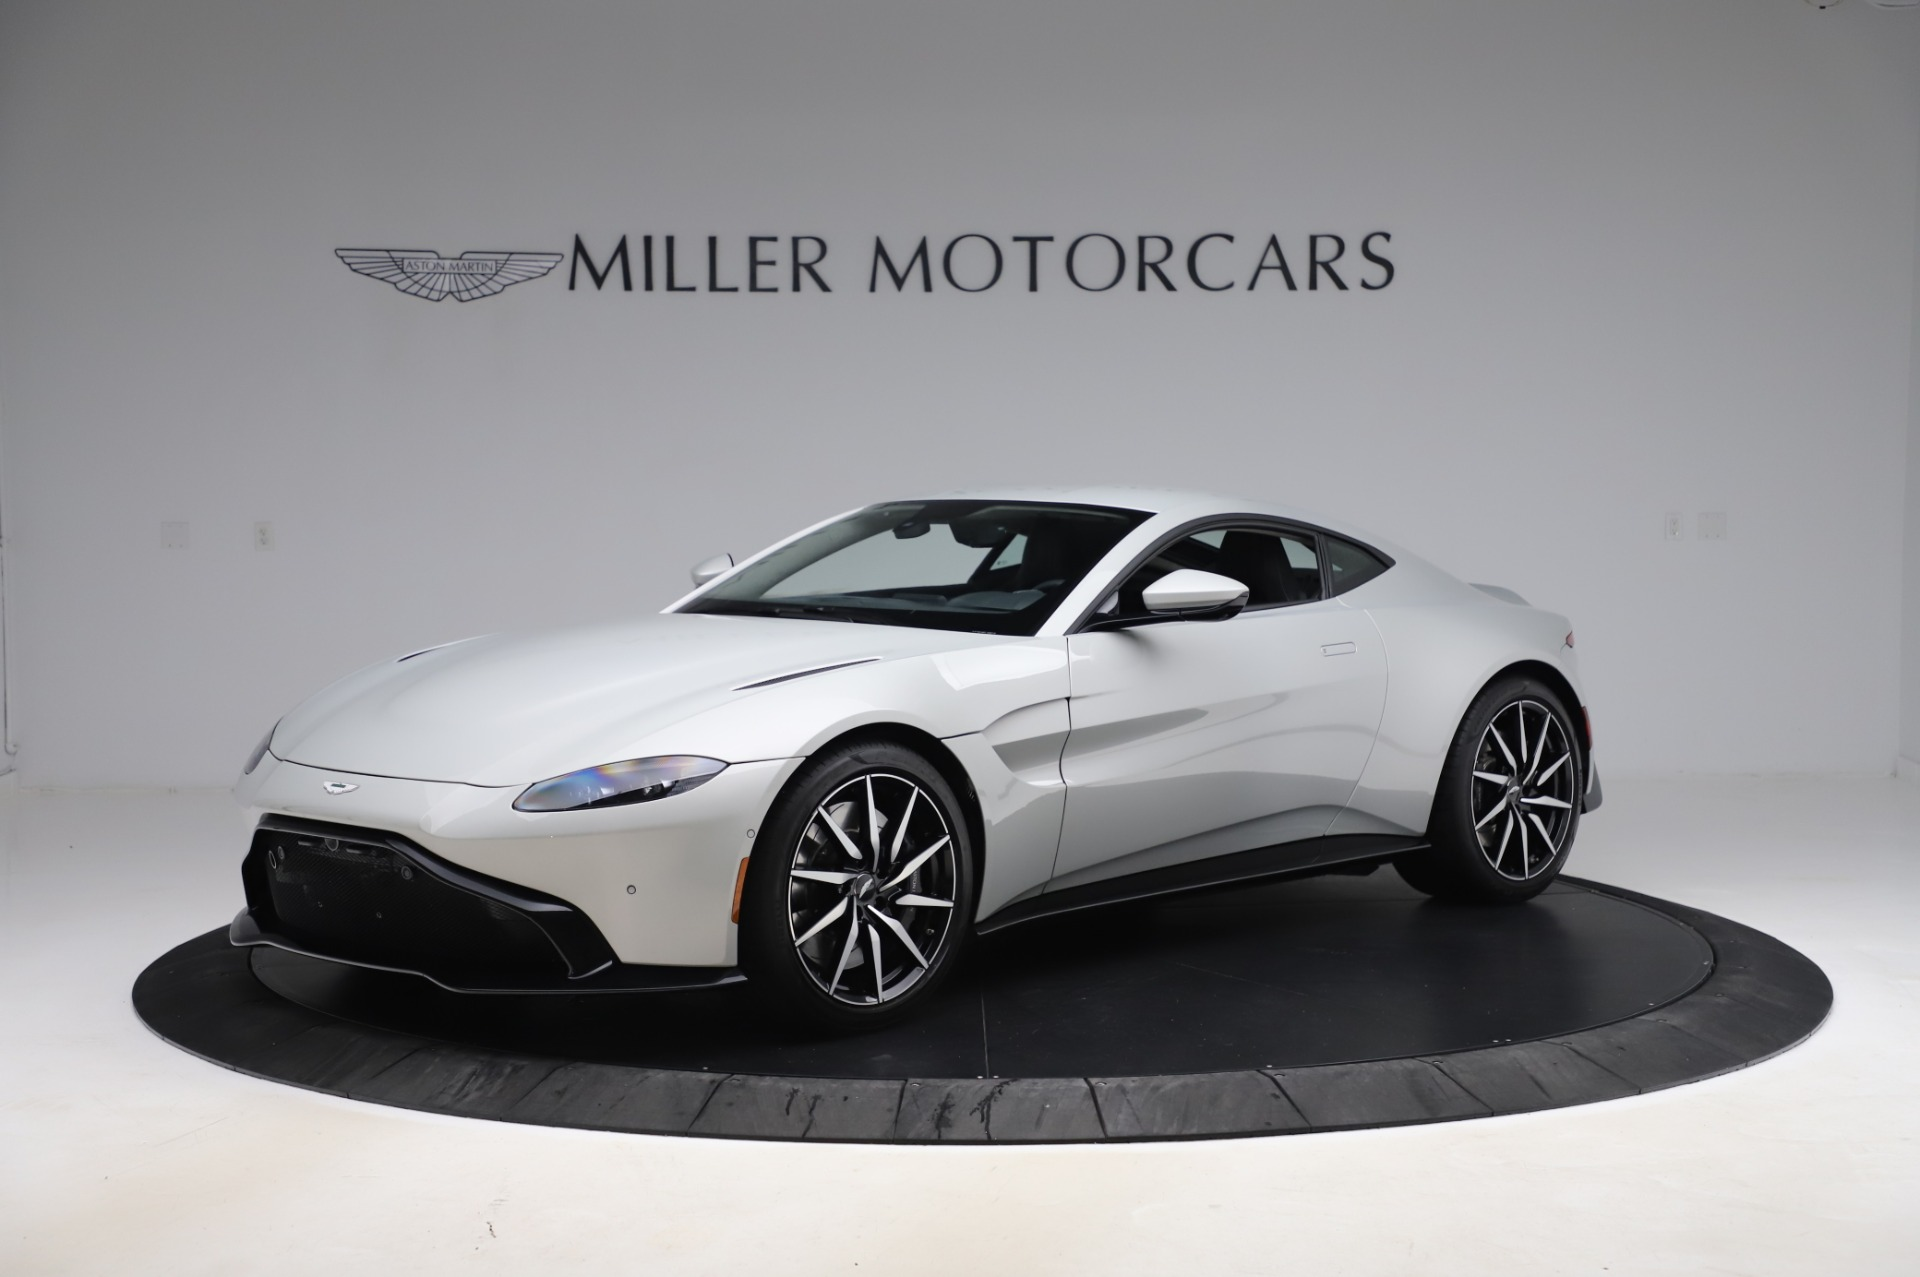 Used 2020 Aston Martin Vantage Coupe for sale $149,800 at Aston Martin of Greenwich in Greenwich CT 06830 1